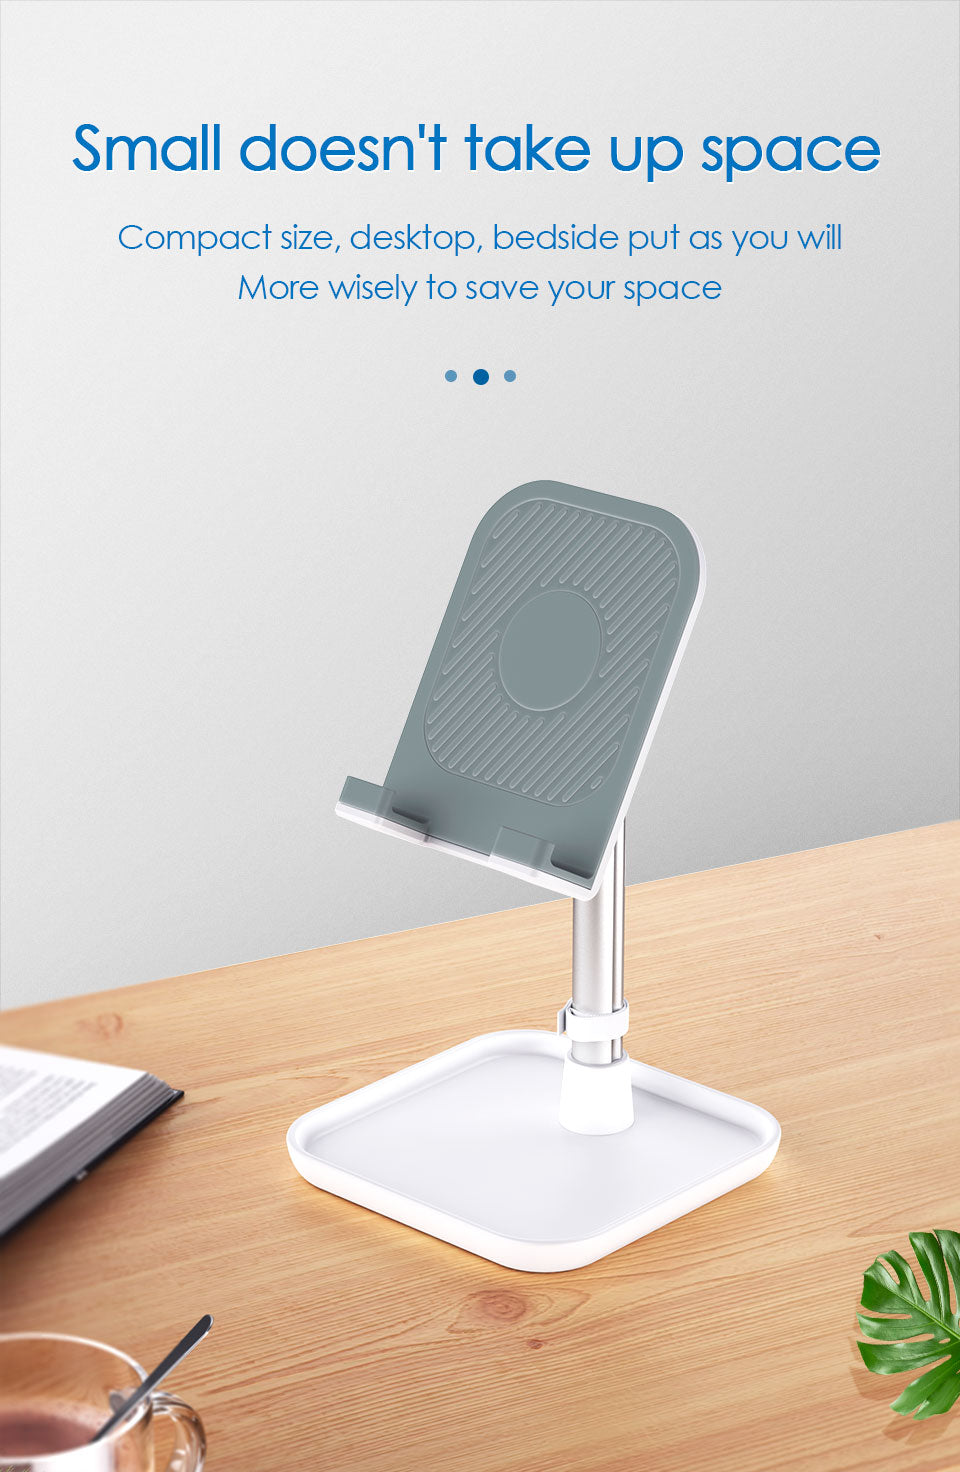 Multi-Angle Adjustable Tablet Stand For iPad MiniiPad Air Height Adjustable Sturdy With Tray Base Suitable For All Makes Of Smartphone And Tablets